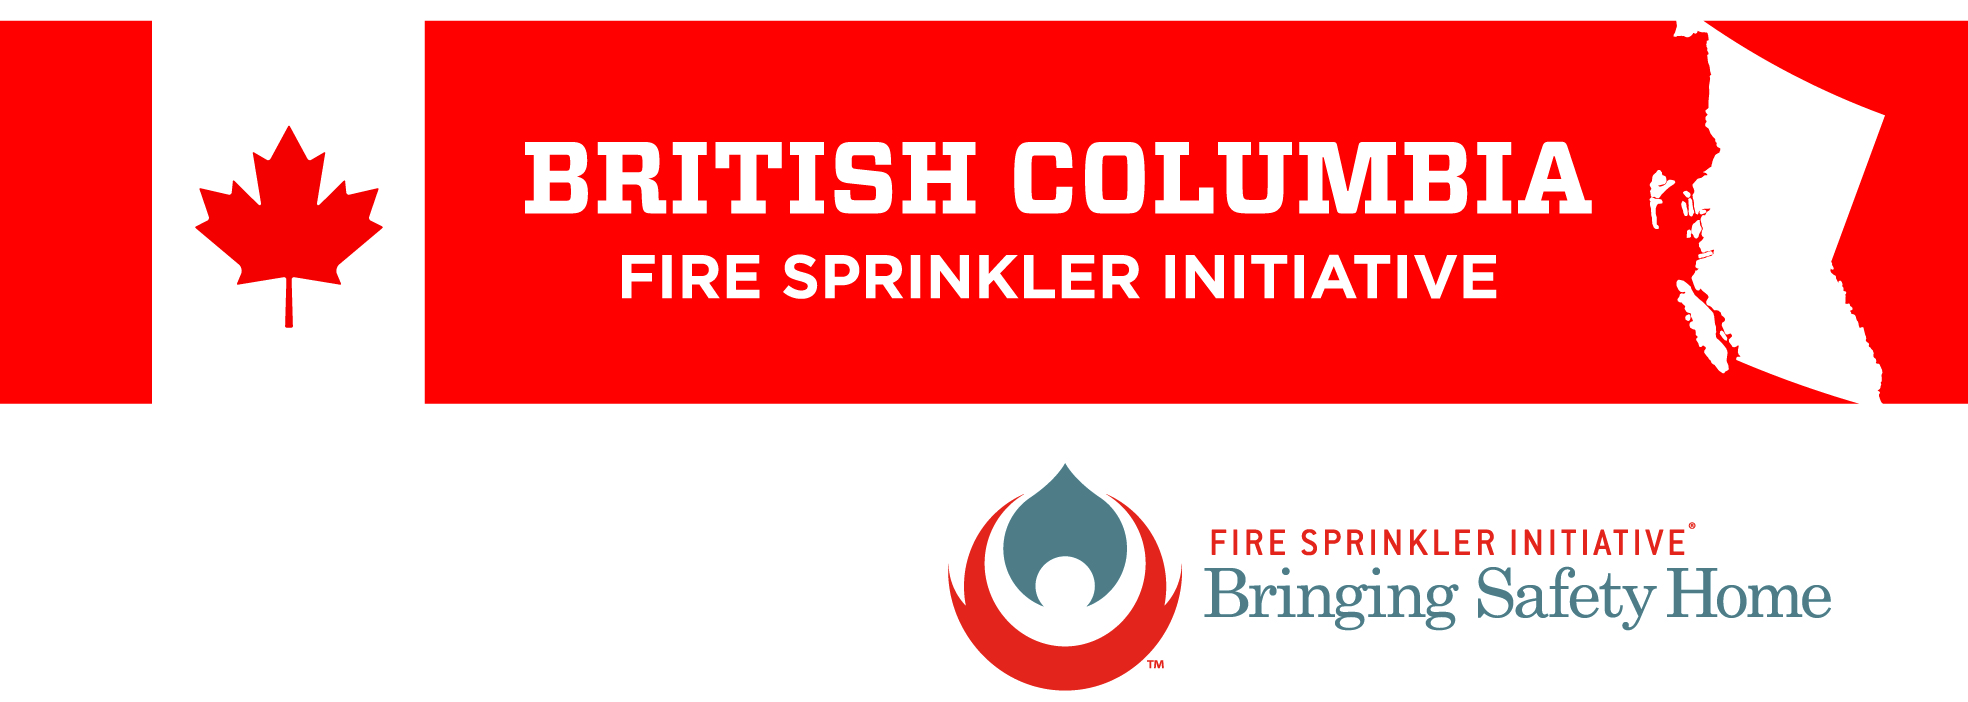 British Columbia Fire Sprinkler Initiative